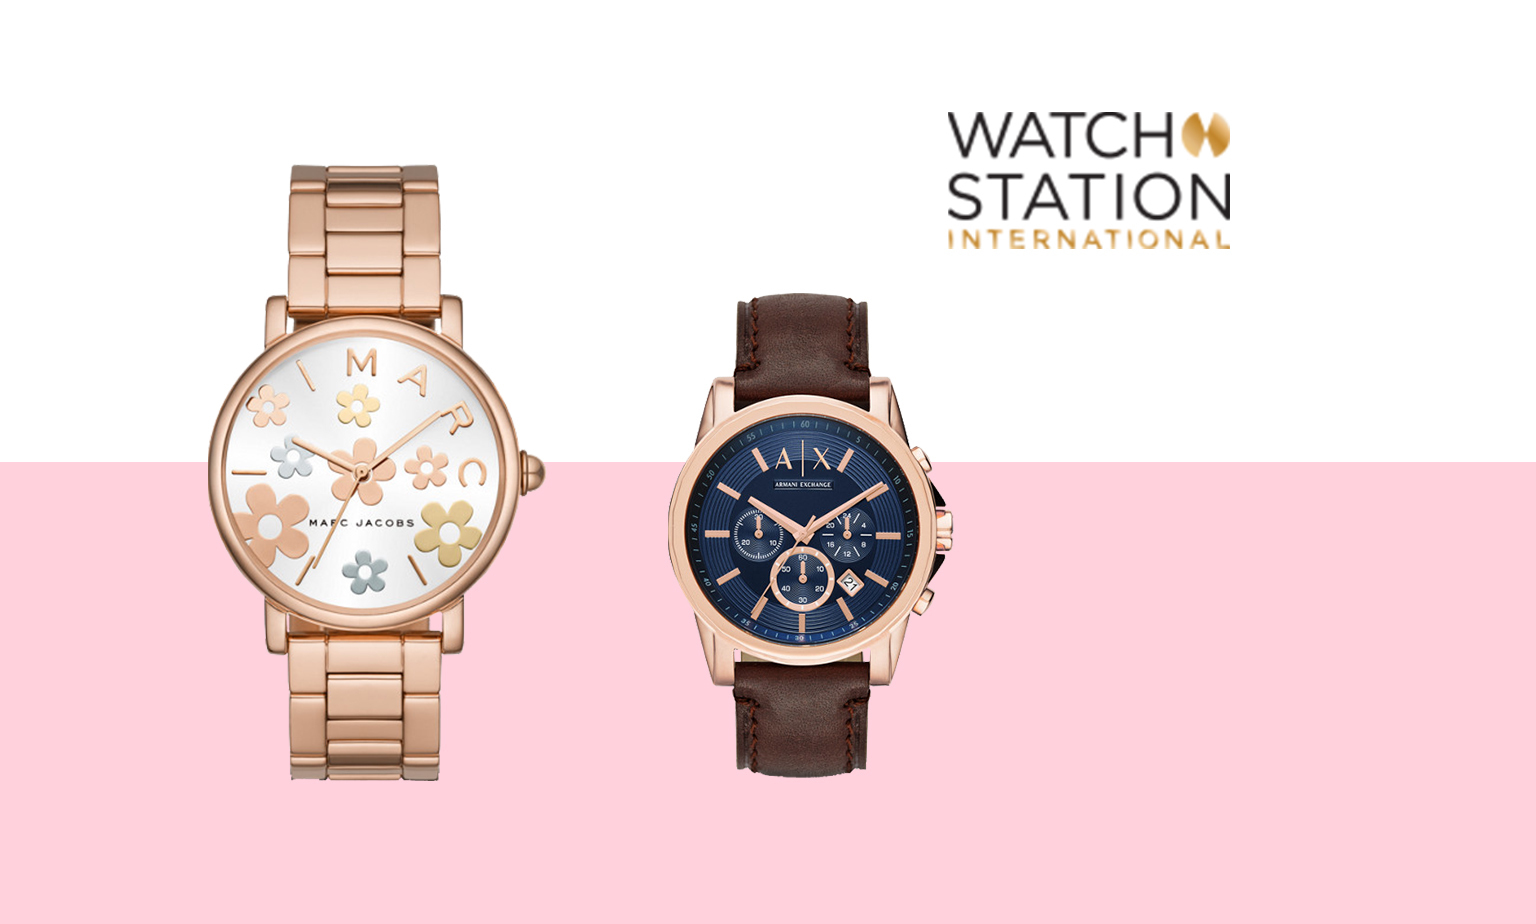 20% off at Watch Station International*